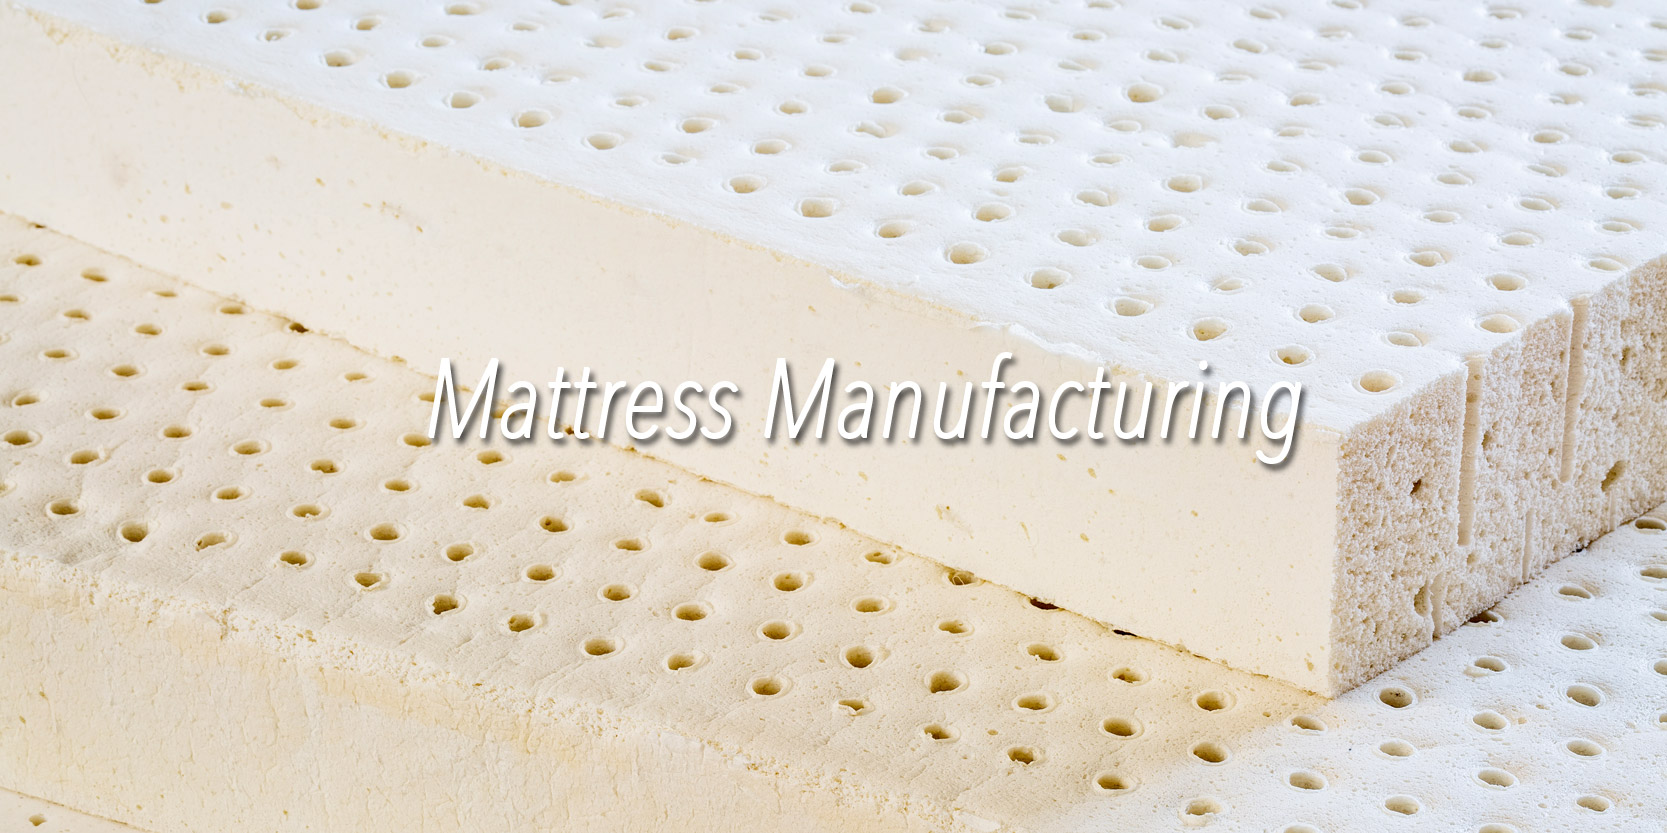 Mattress Manufacturing - What is a GOLS Transactional Certificate